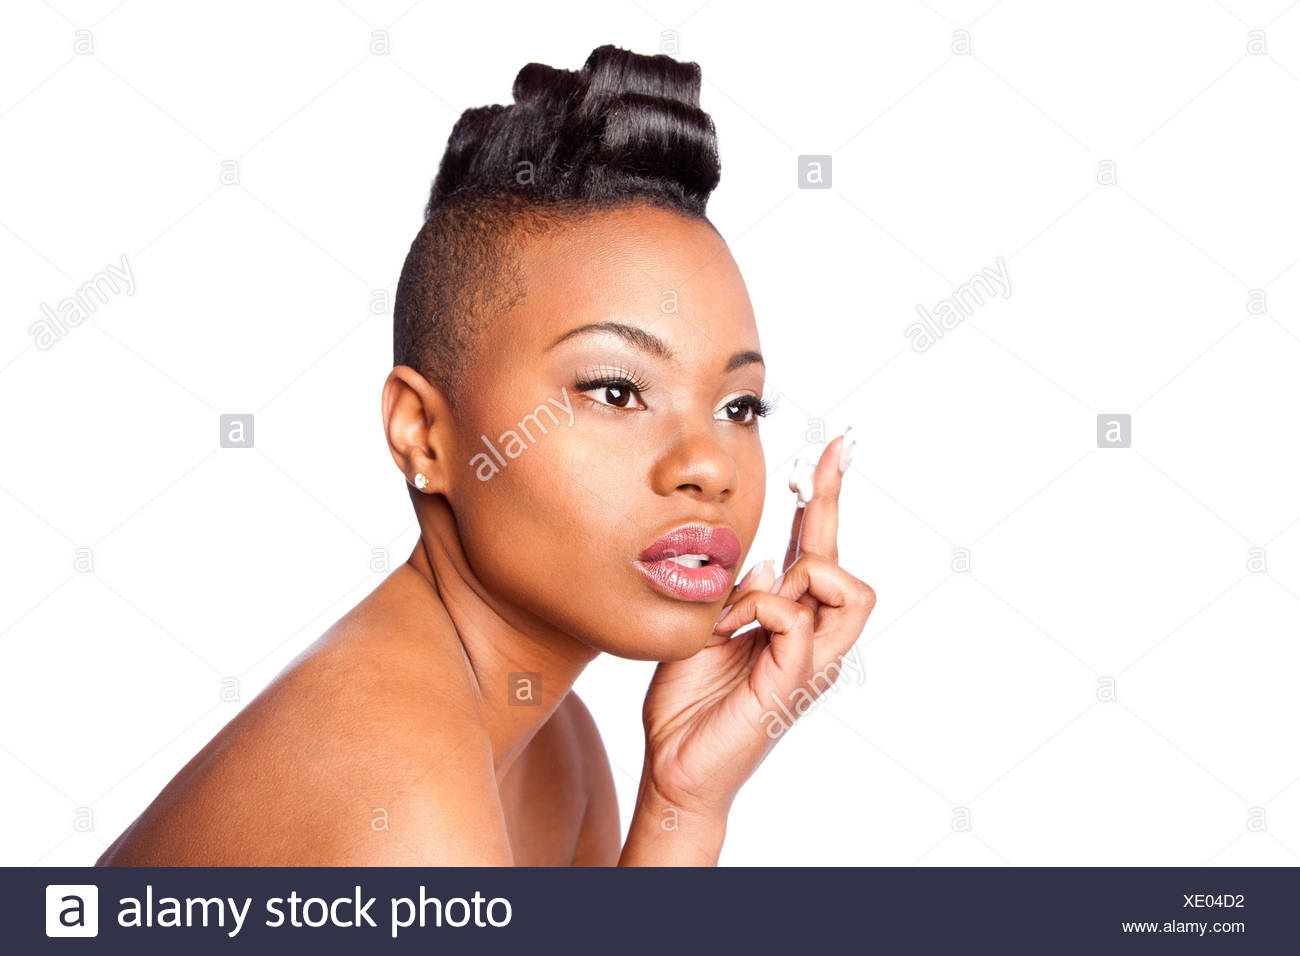 Face of beautiful woman applying facial moisturizer exfoliating anti wrinkle aging cream under eyes, skincare concept, isolated. - Stock Image